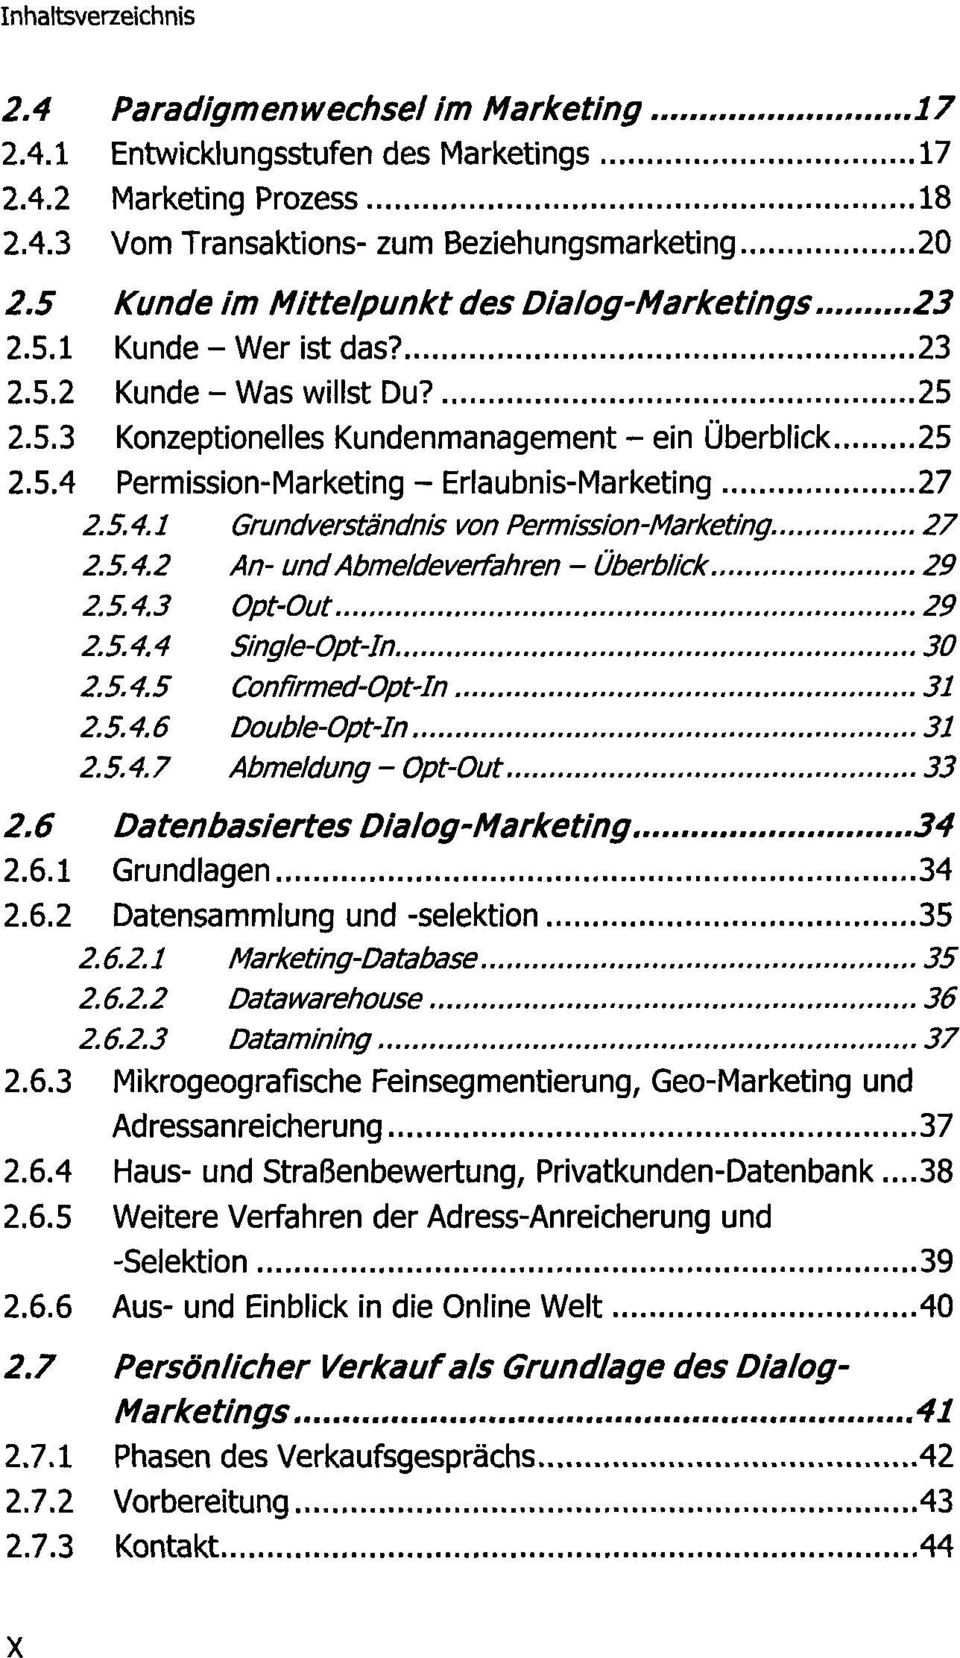 5.4.1 Grundverständnis von Permission-Marketing. 27 2.5.4.2 An- und Abmeldeverfahren - Überblick 29 2.5.4.3 Opt-Out 29 2.5.4.4 Single-Opt-In 30 2.5.4.5 Confirmed-Opt-In 31 2.5.4.6 Double-Opt-In 31 2.